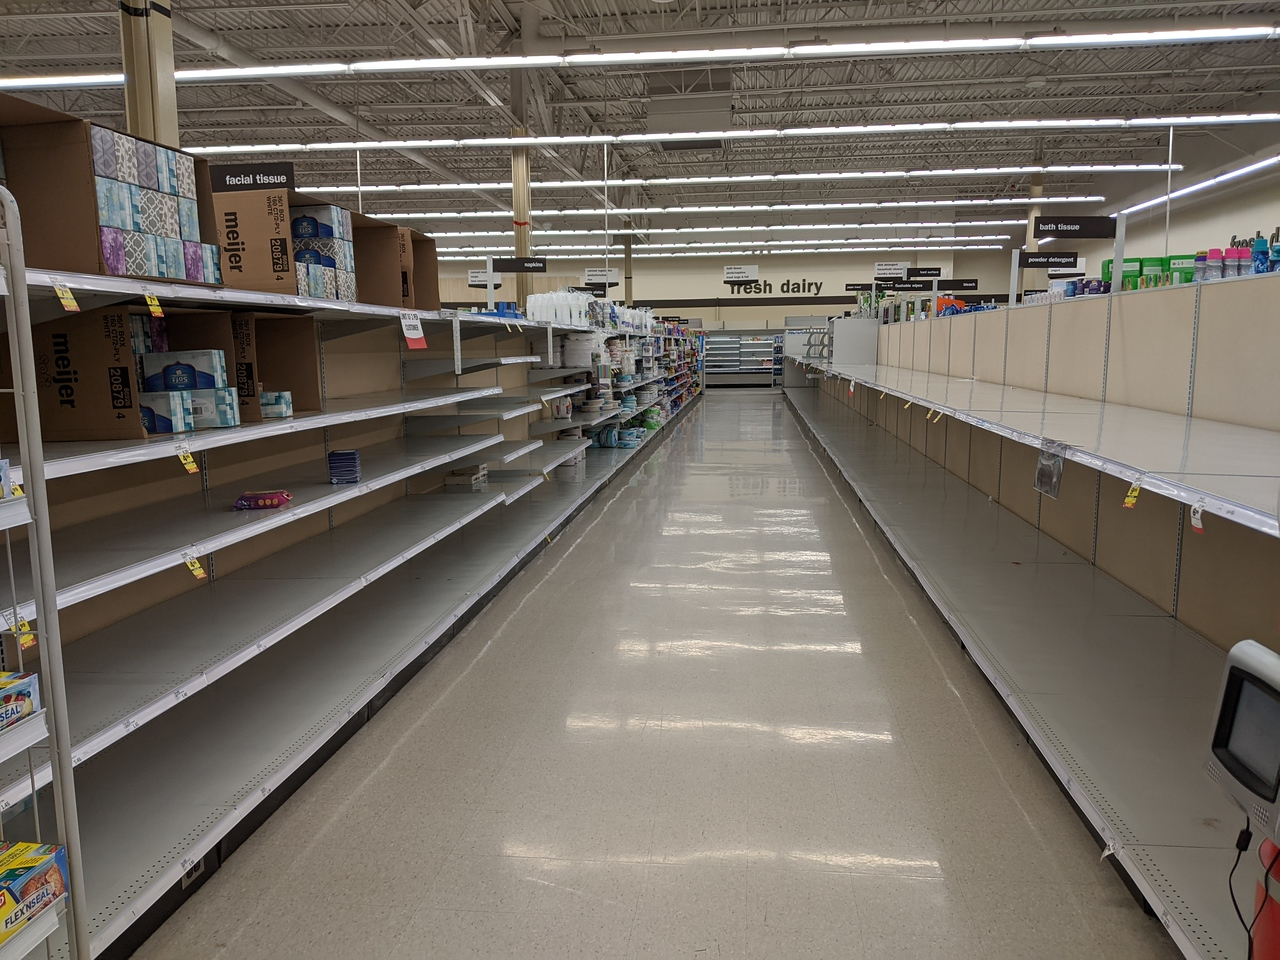 Toilet paper aisle at Meijer store in Beavercreek, Ohio, on March 20, 2020